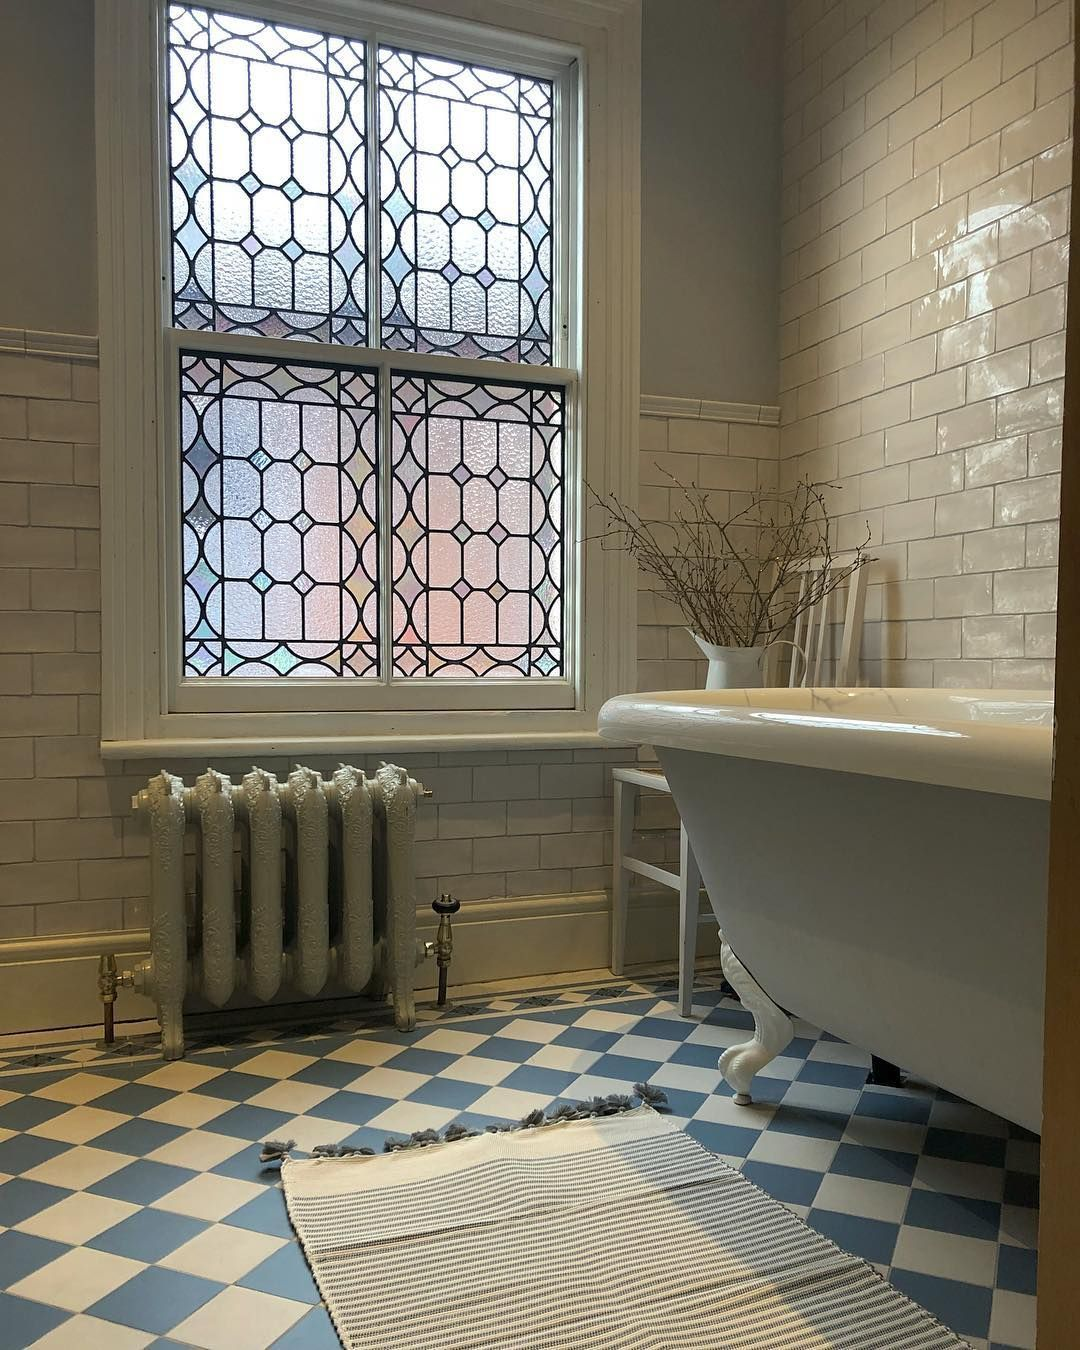 Image Result For Chequered Bathroom Tiles Bathroom Interior